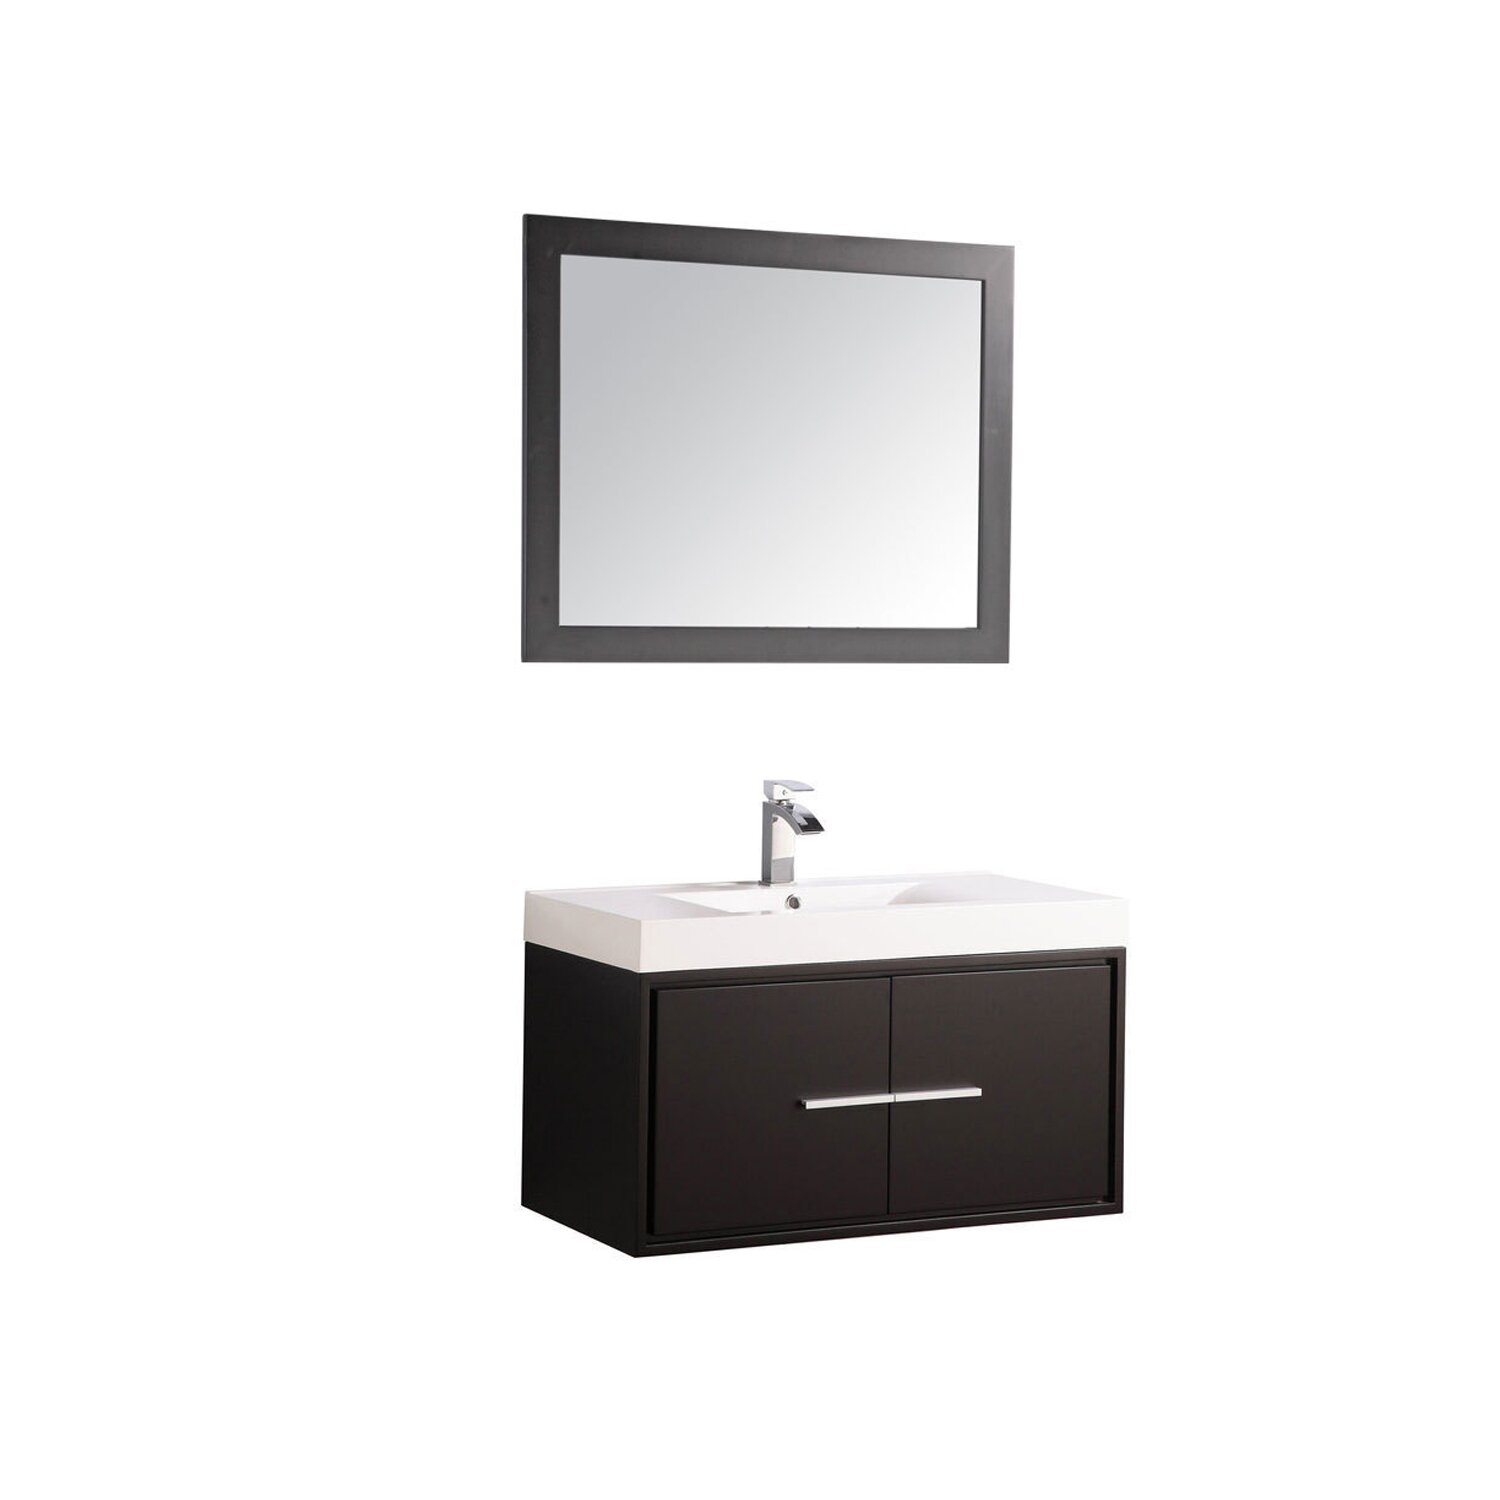 Mtdvanities cypress 36 single floating bathroom vanity Floating bathroom vanity